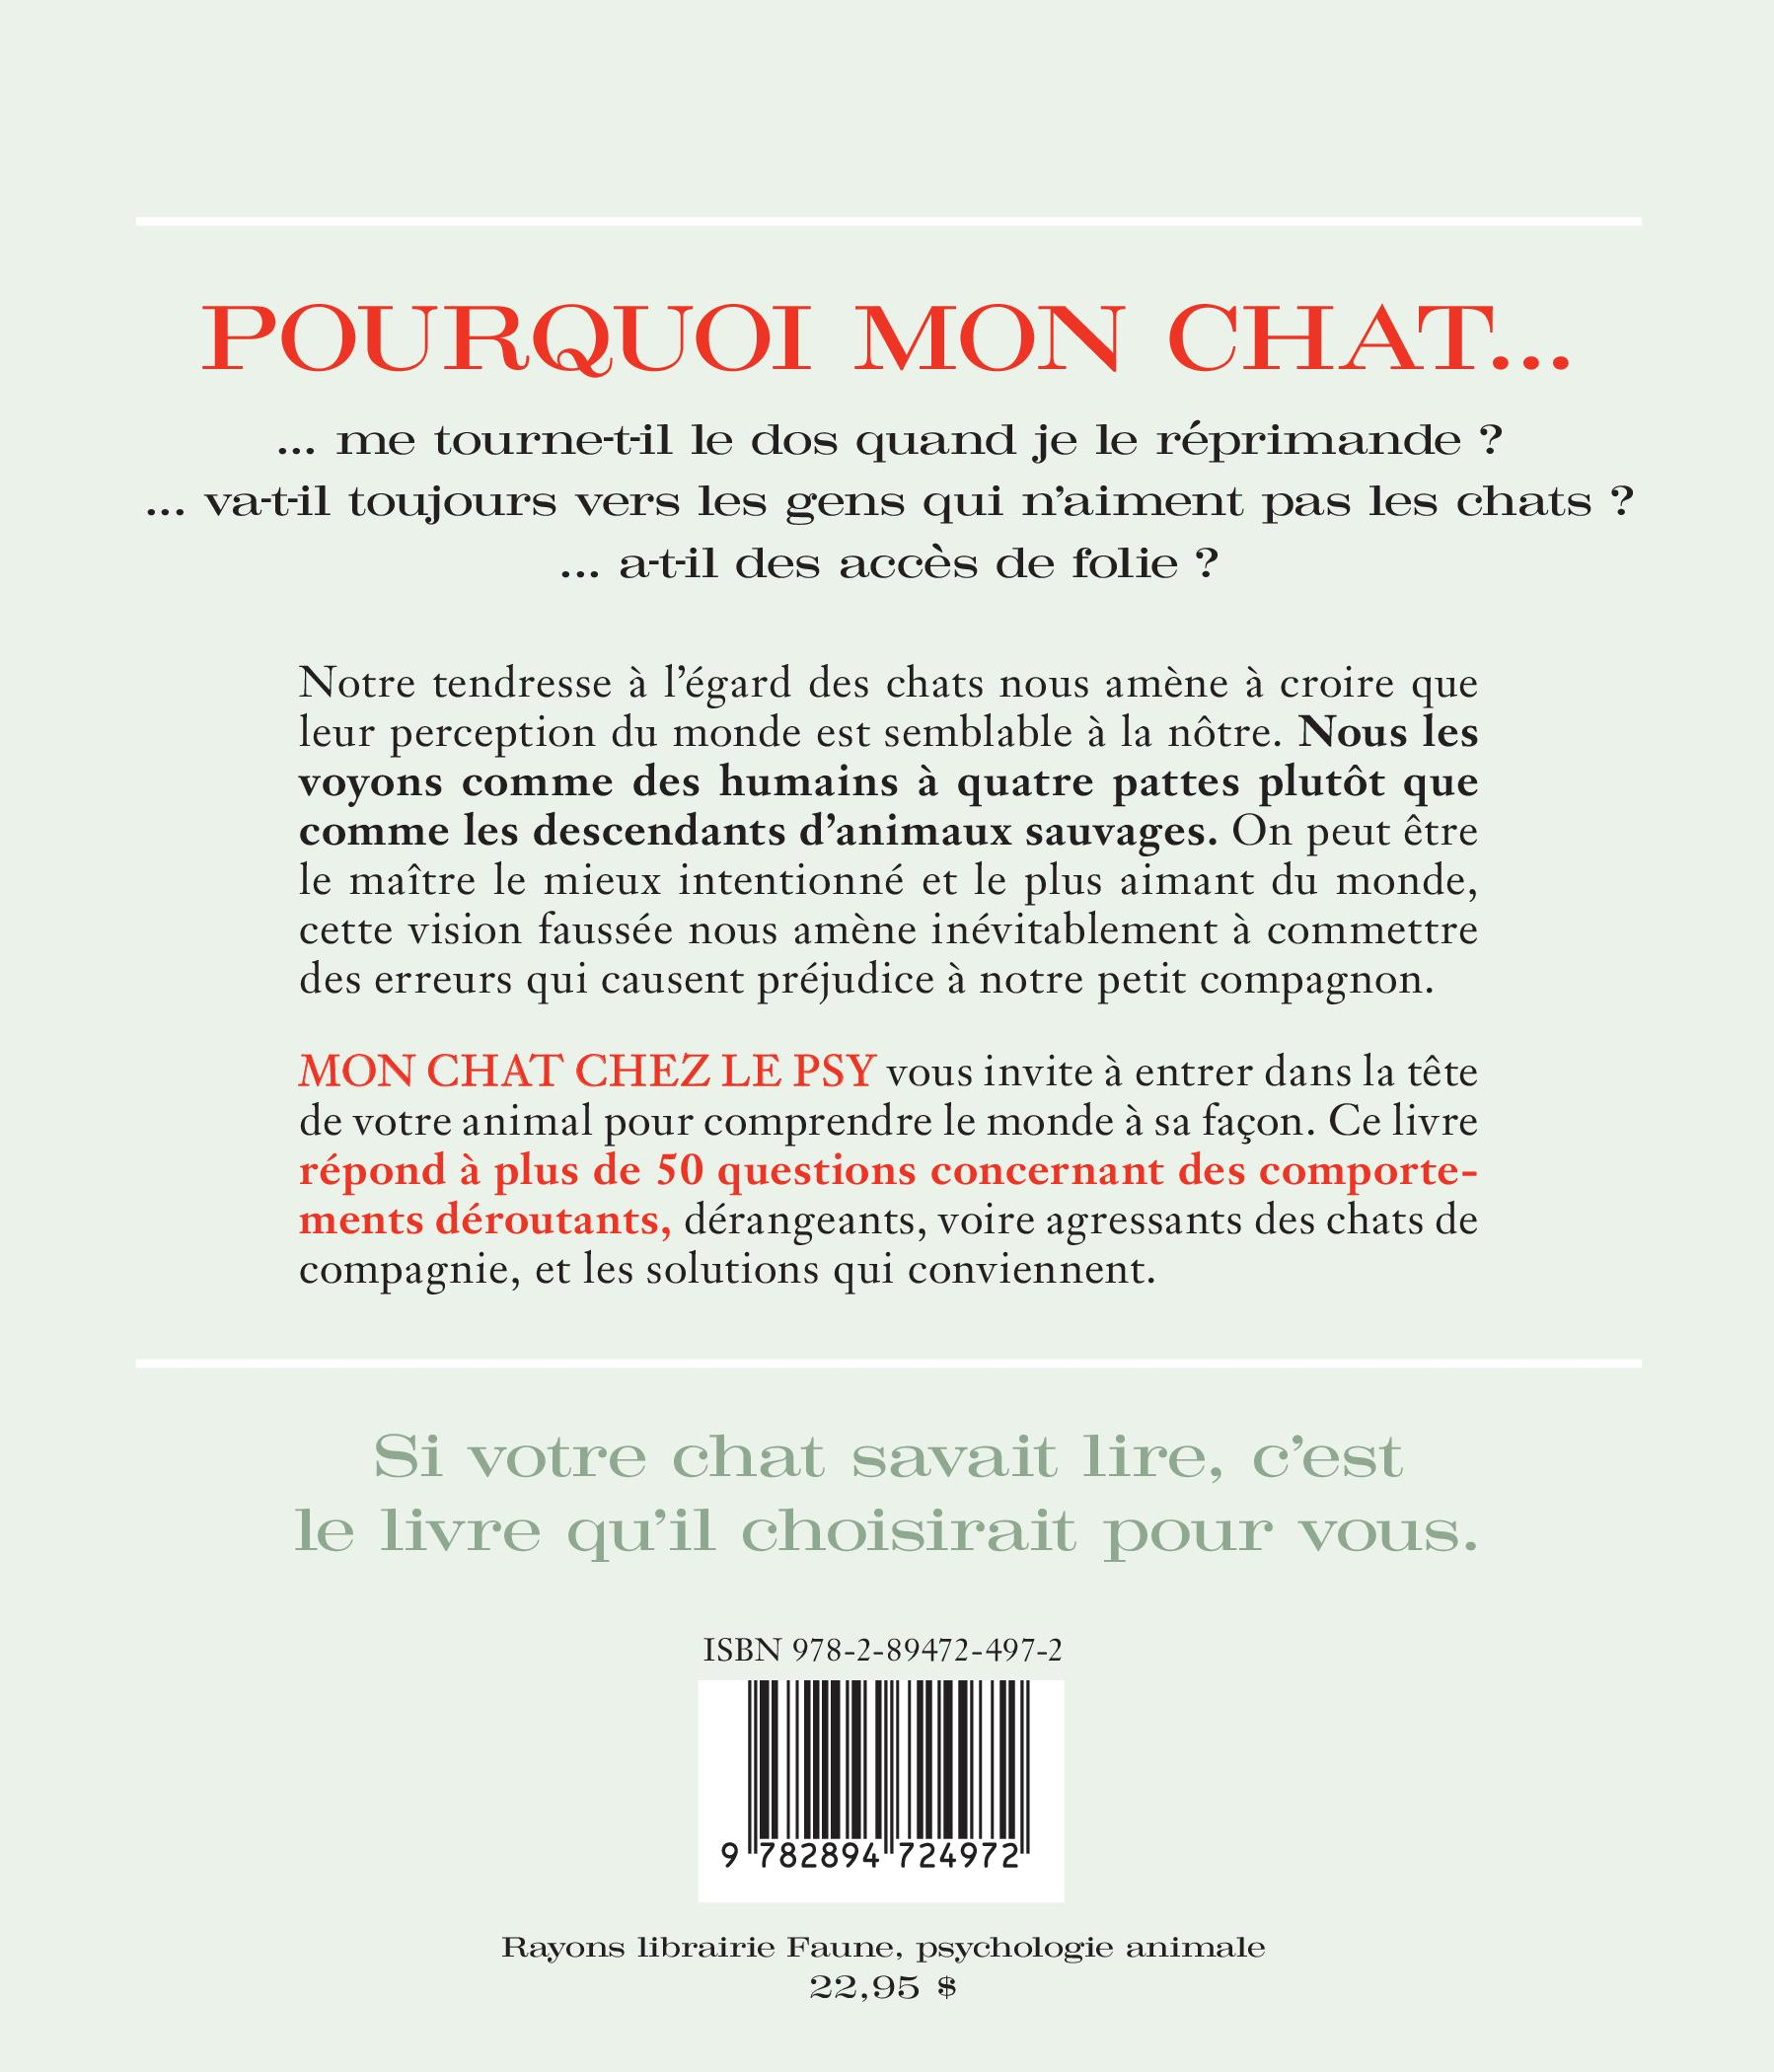 Mon chat chez le psy : 50 comportements intrigants... - Catherine Davidson revers